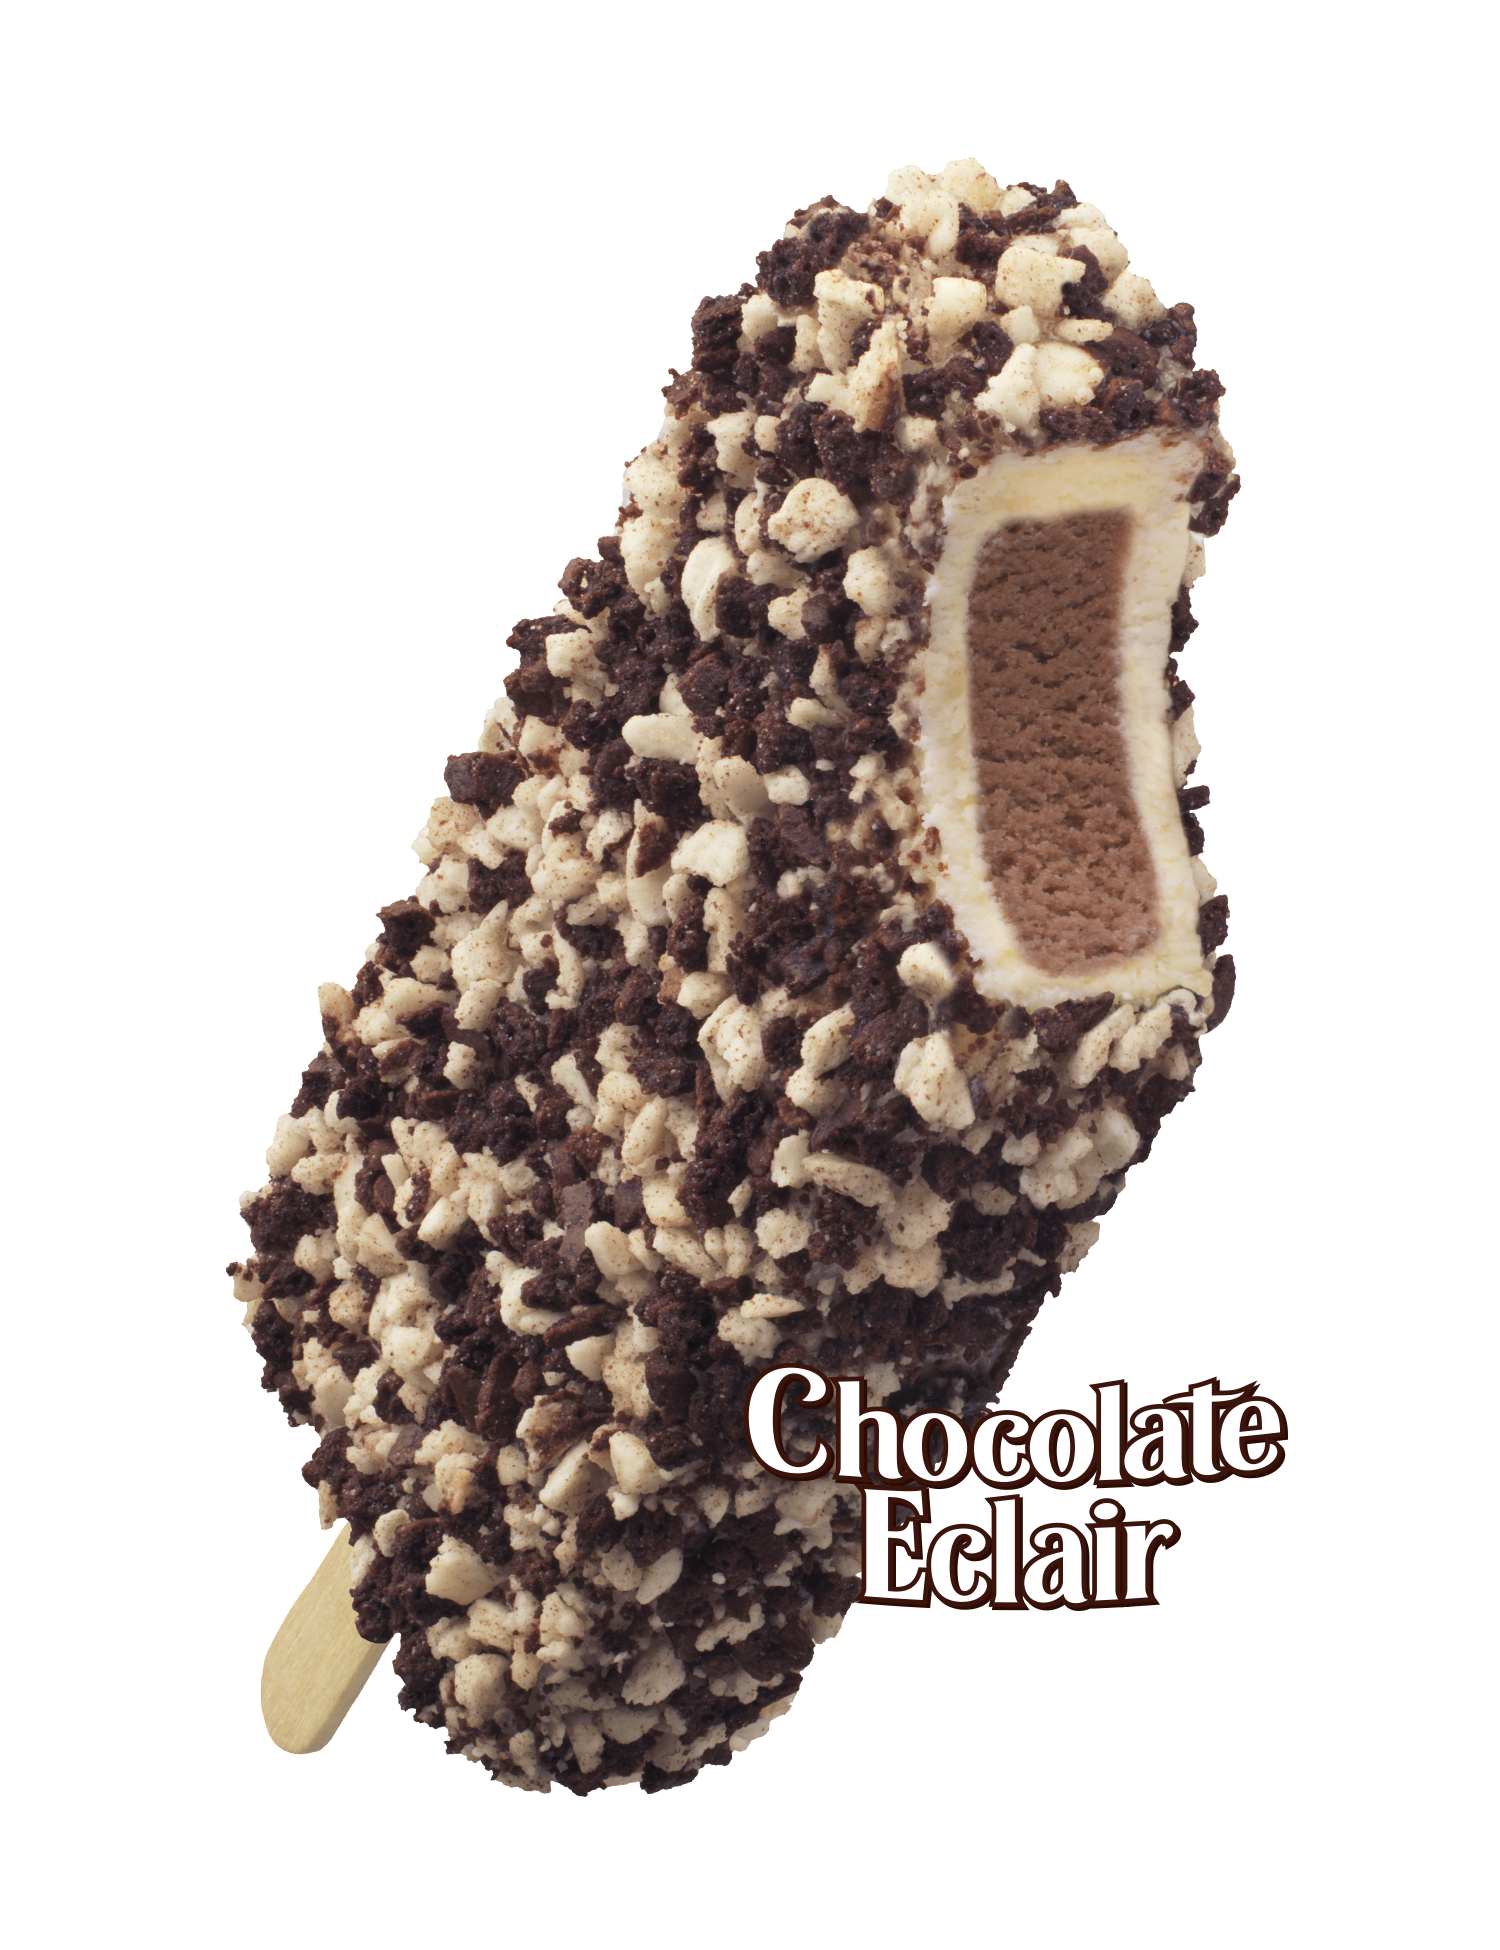 What Is On A Chocolate Eclair Ice Cream Bar